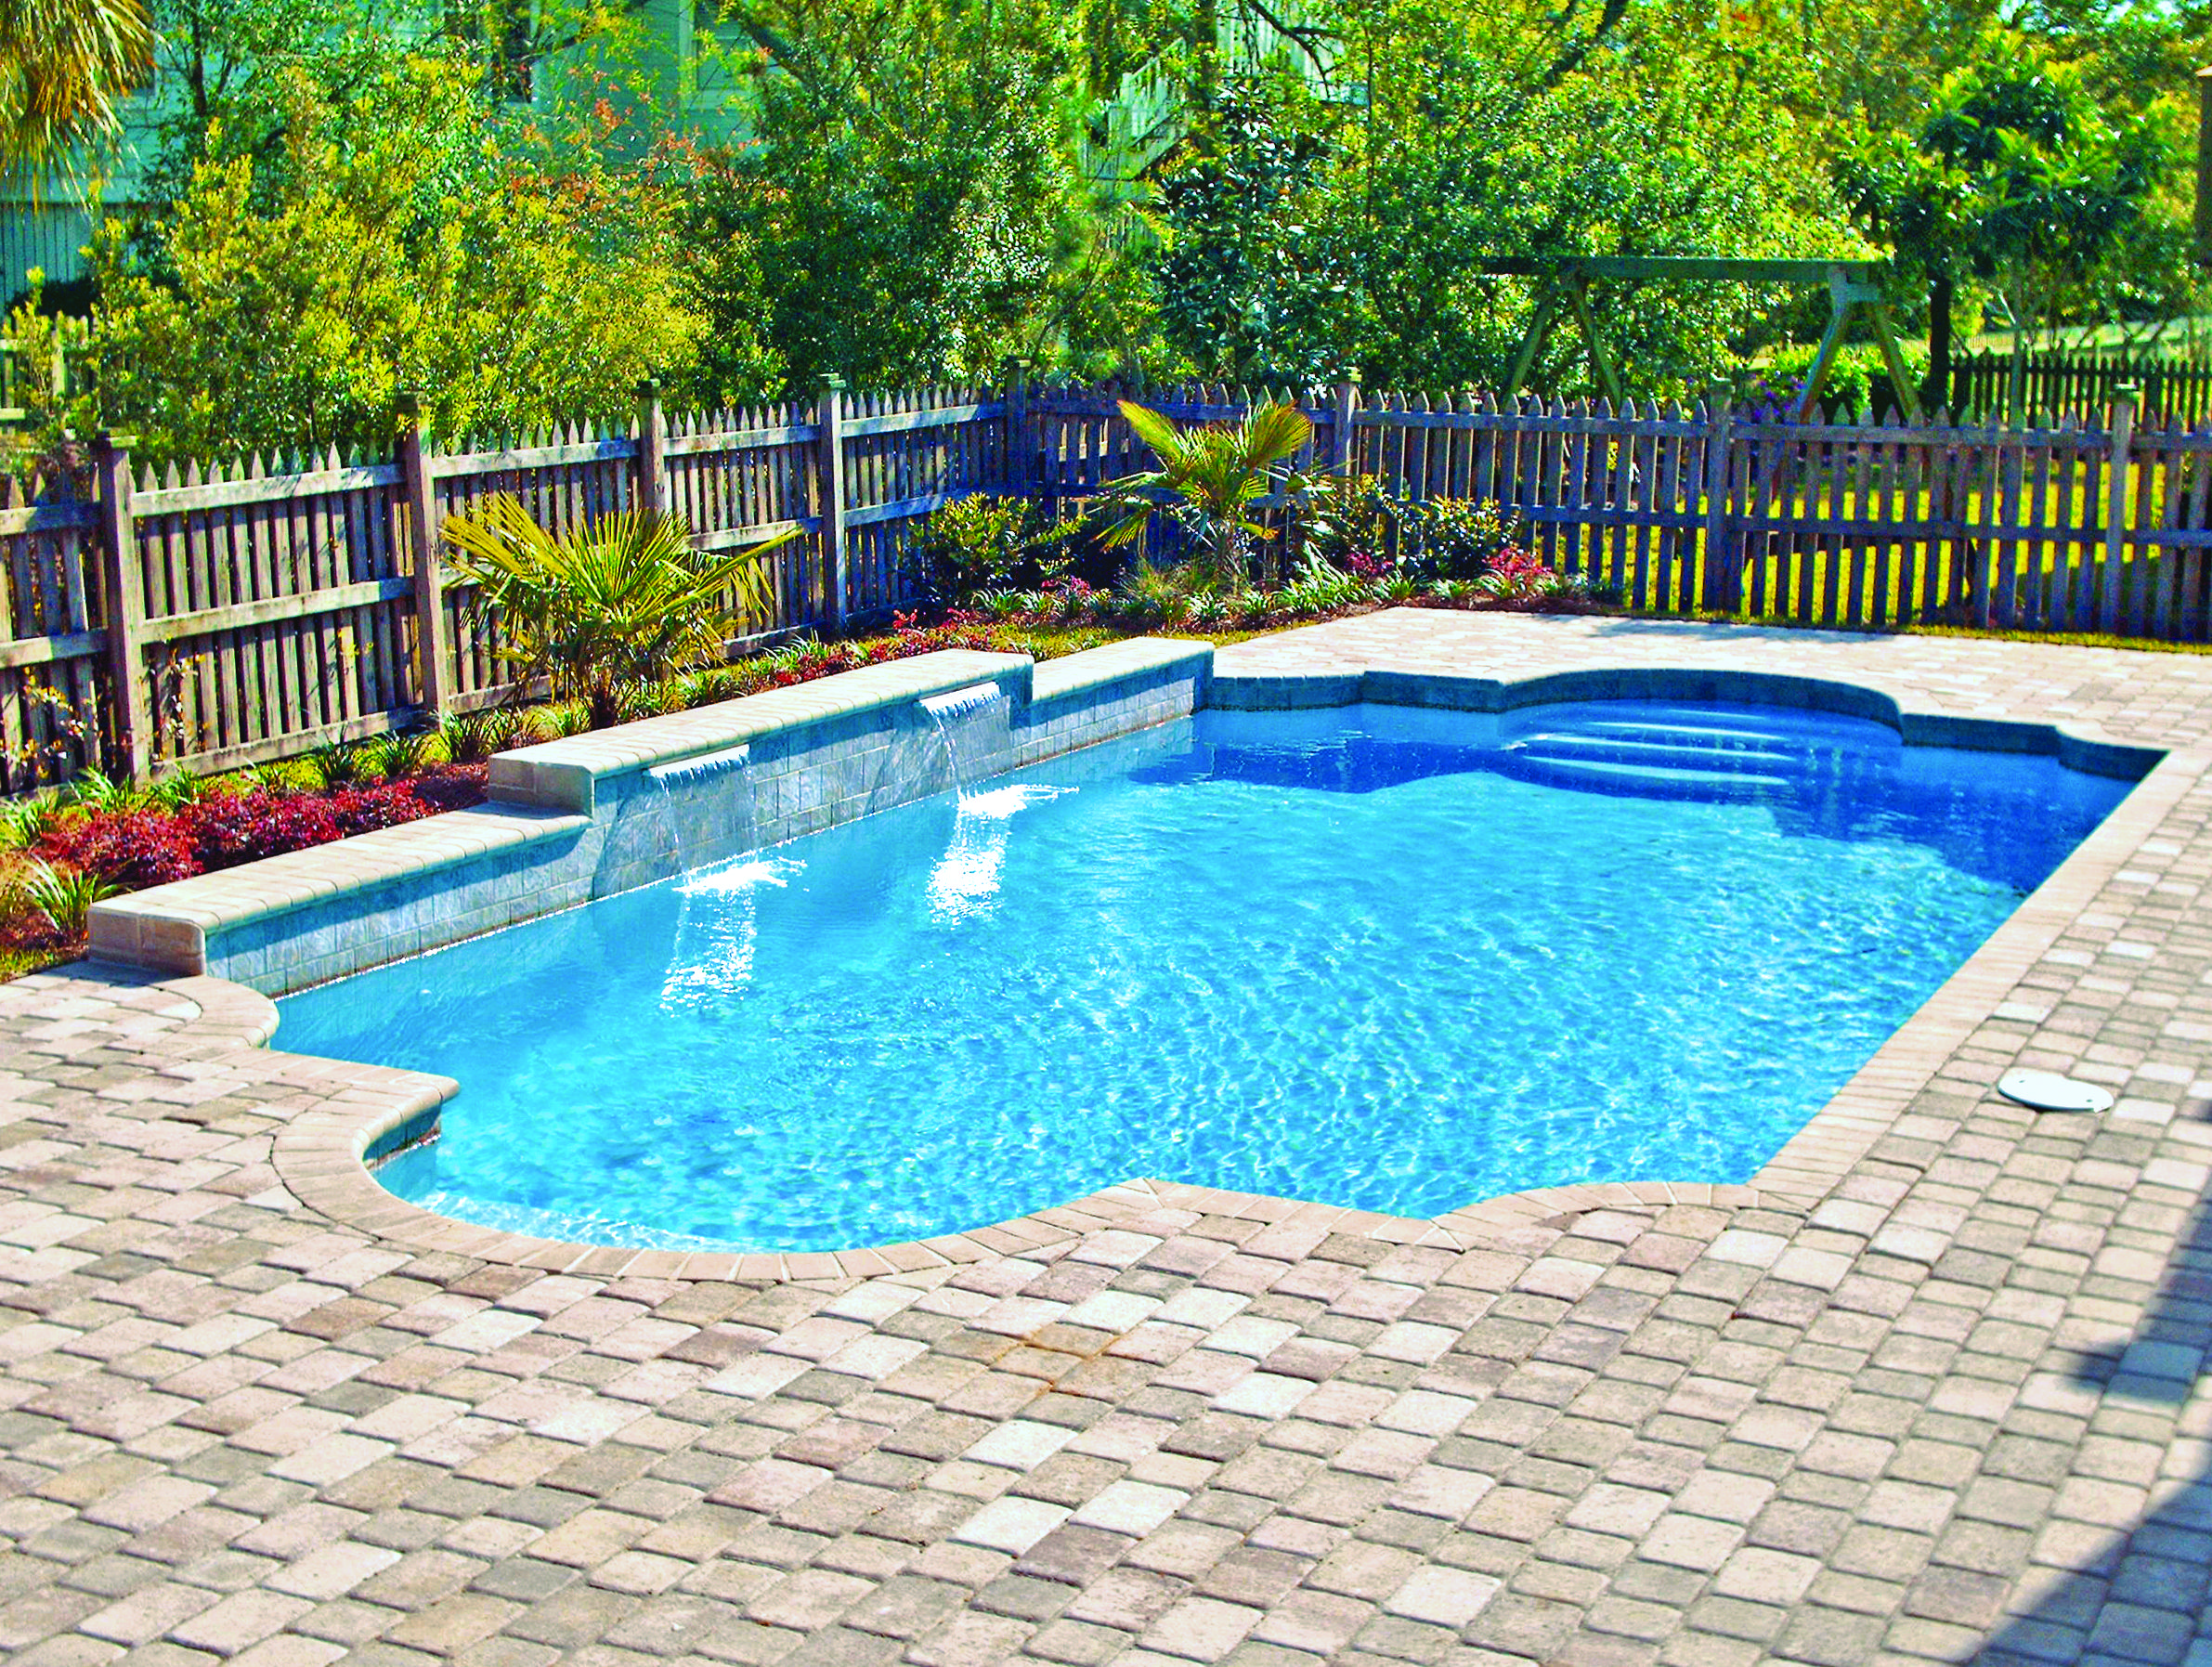 Roman Style Pools Grecian Style Pool Design Pictures Backyard Pool Pool Landscaping Backyard Pool Landscaping